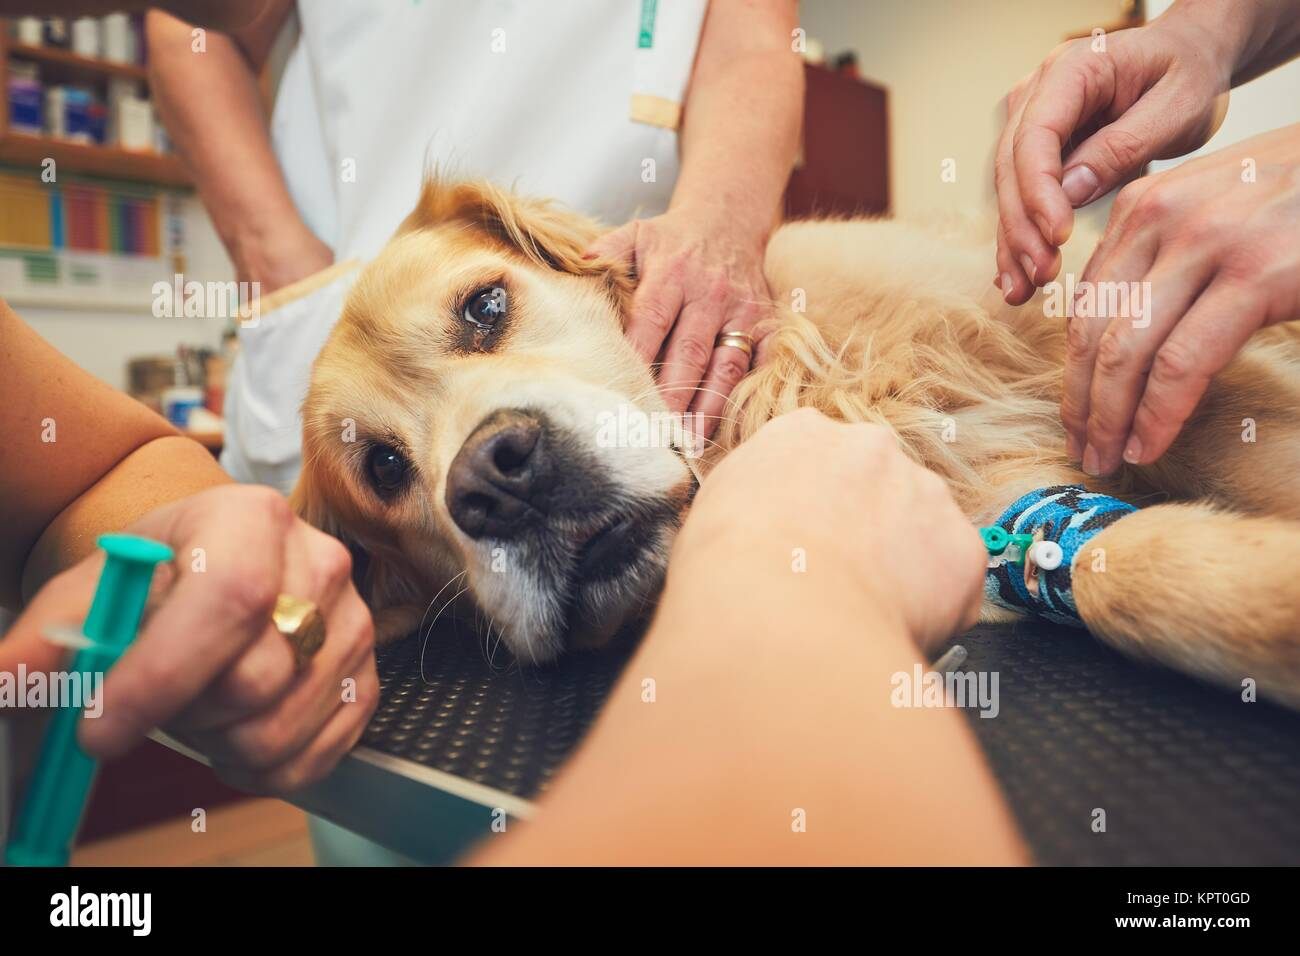 Golden retriever in the animal hospital. Veterinarians preparing the dog for surgery. - Stock Image